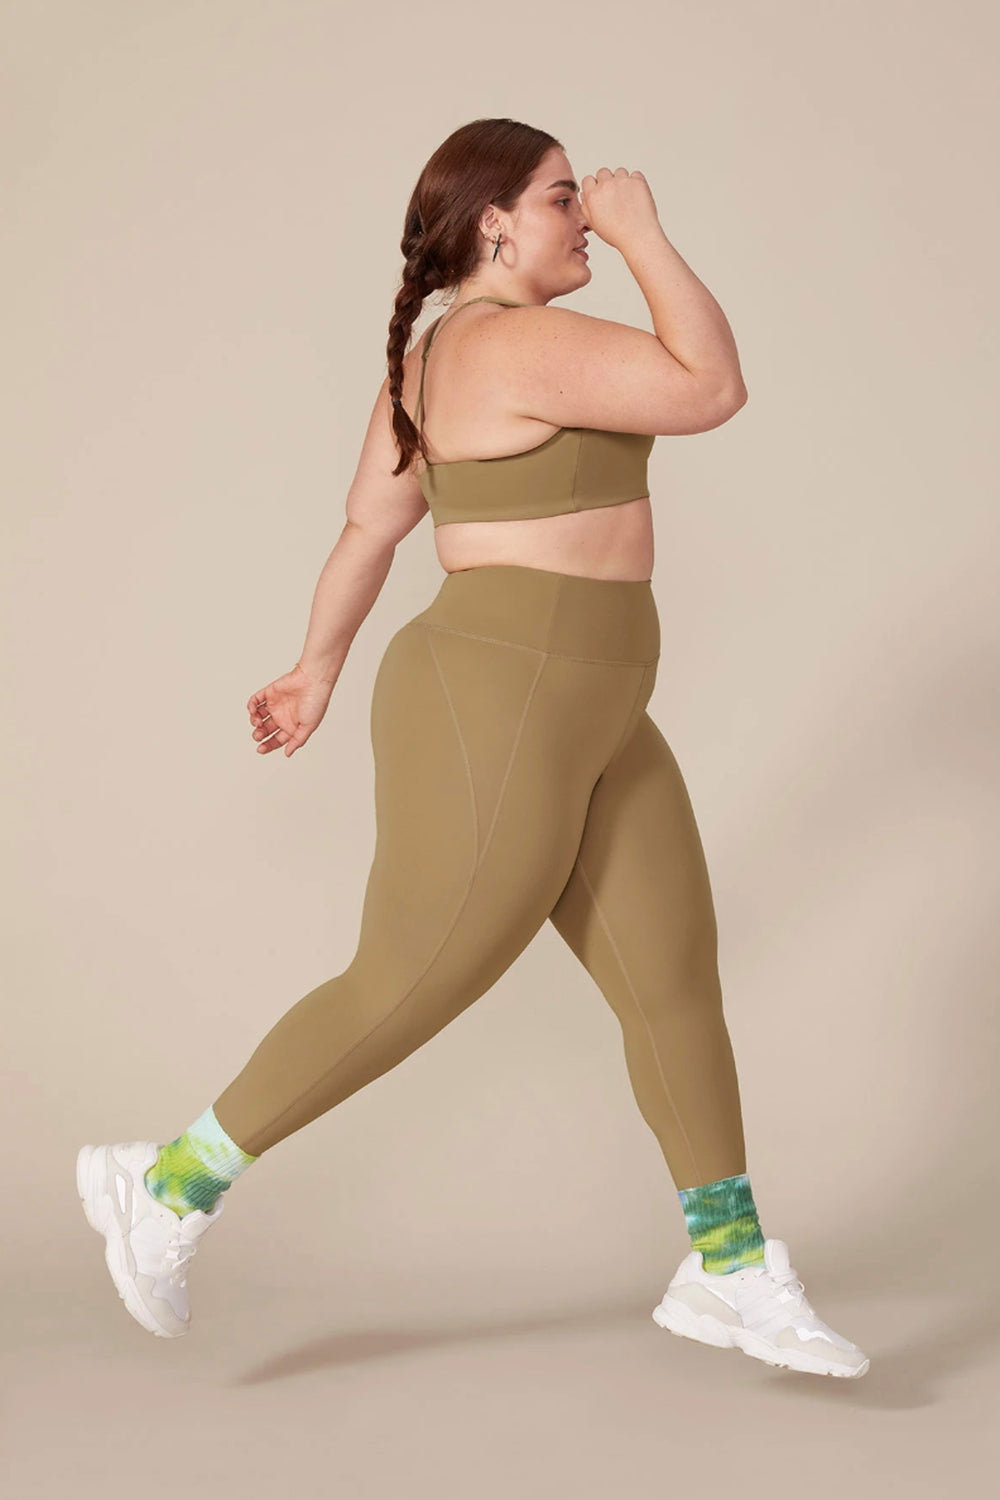 Girlfriend Collective Long Compressive High-Rise Legging in Sand - Whimsy & Row